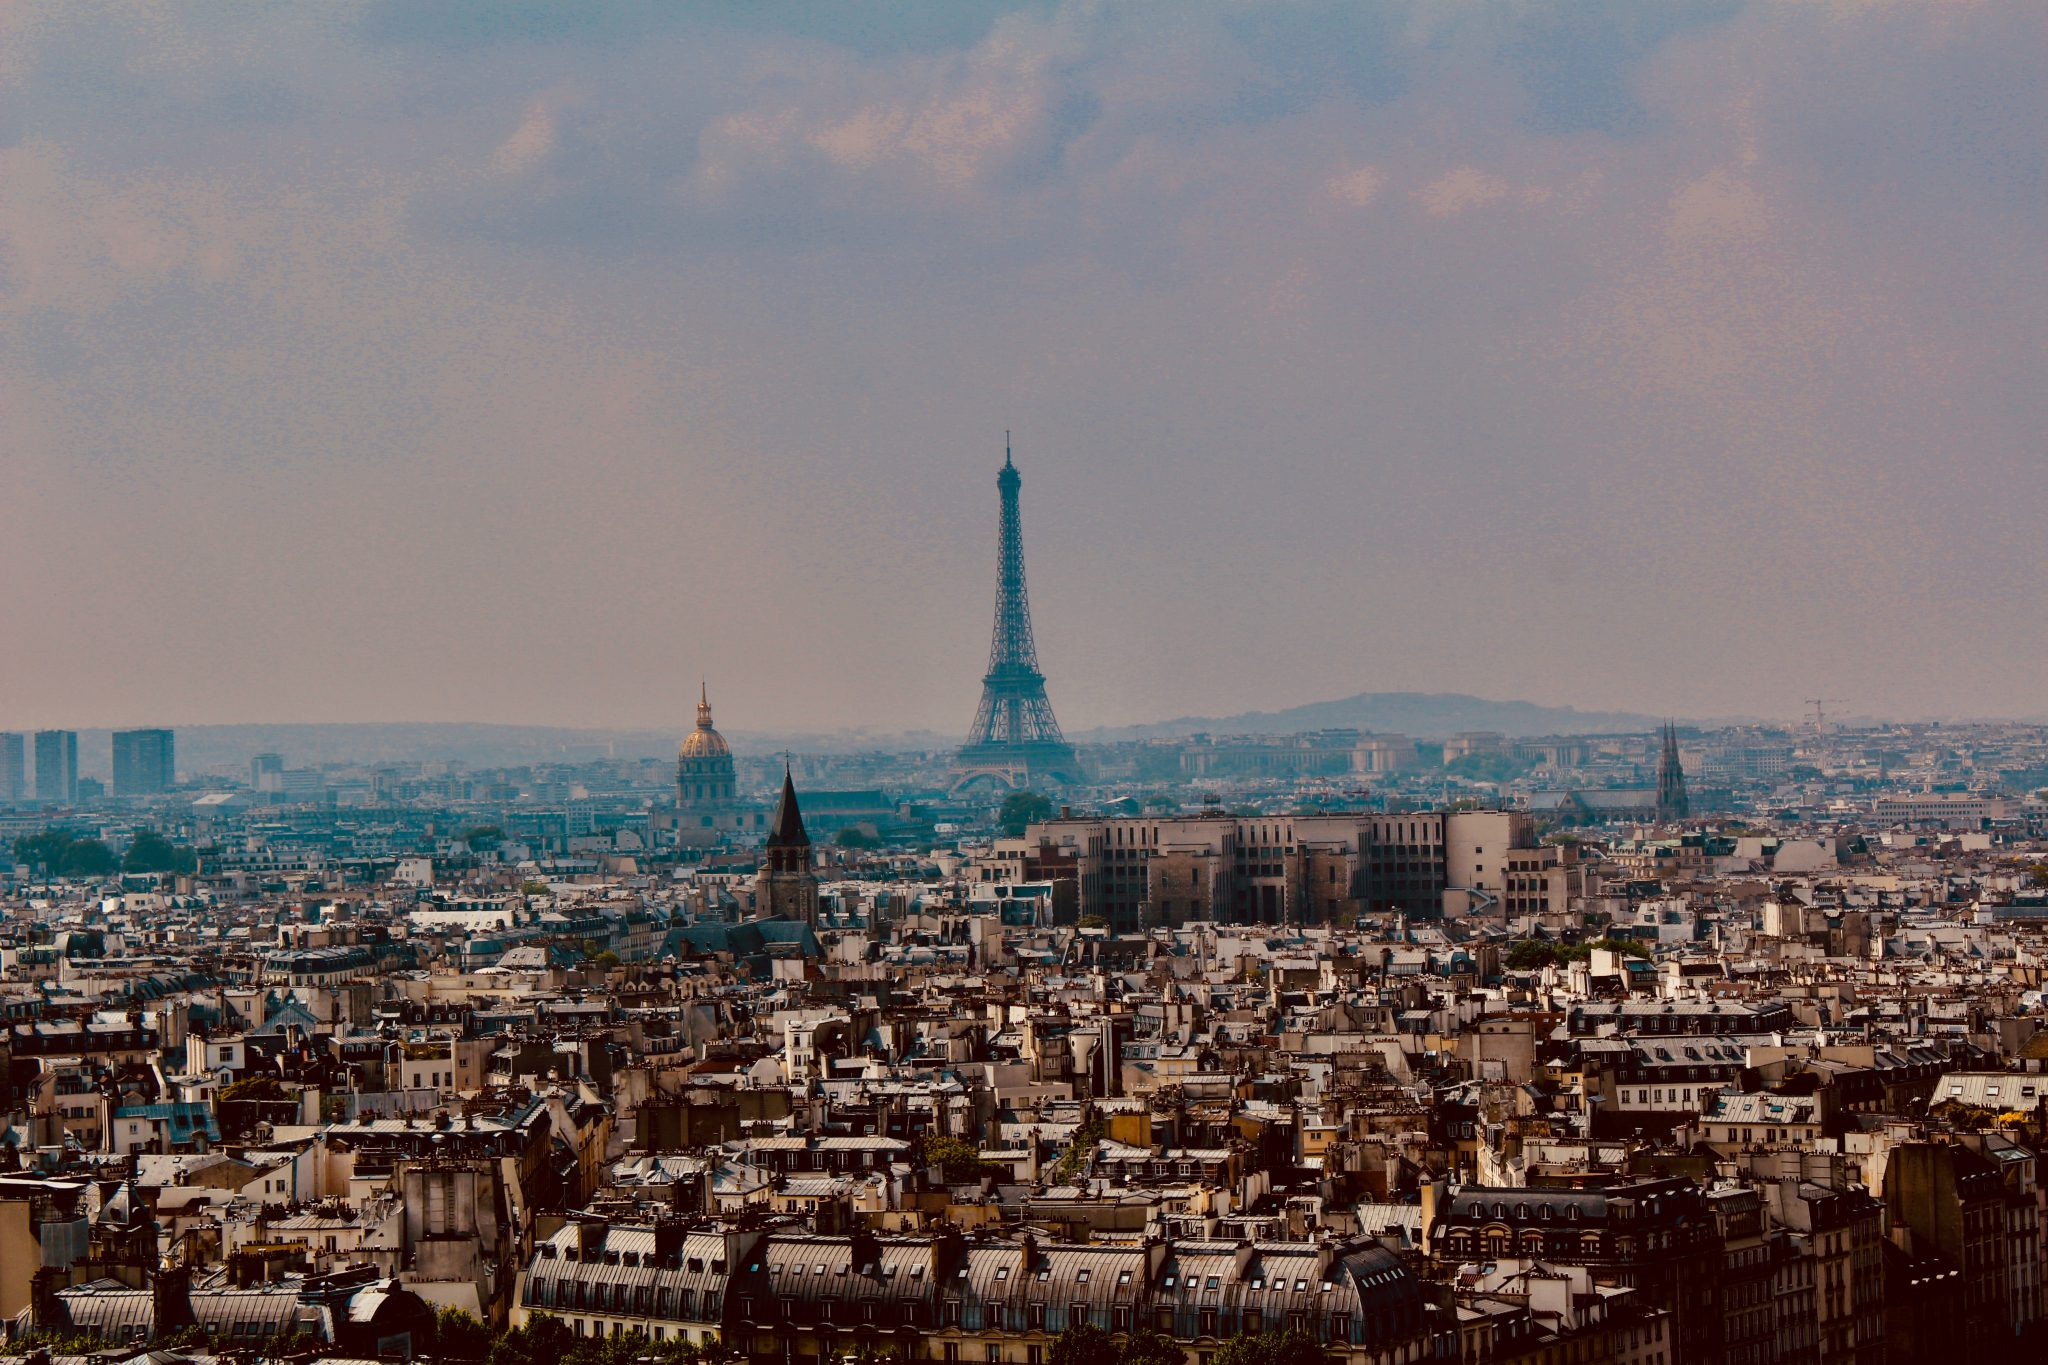 Paris, France city with Eiffel tower